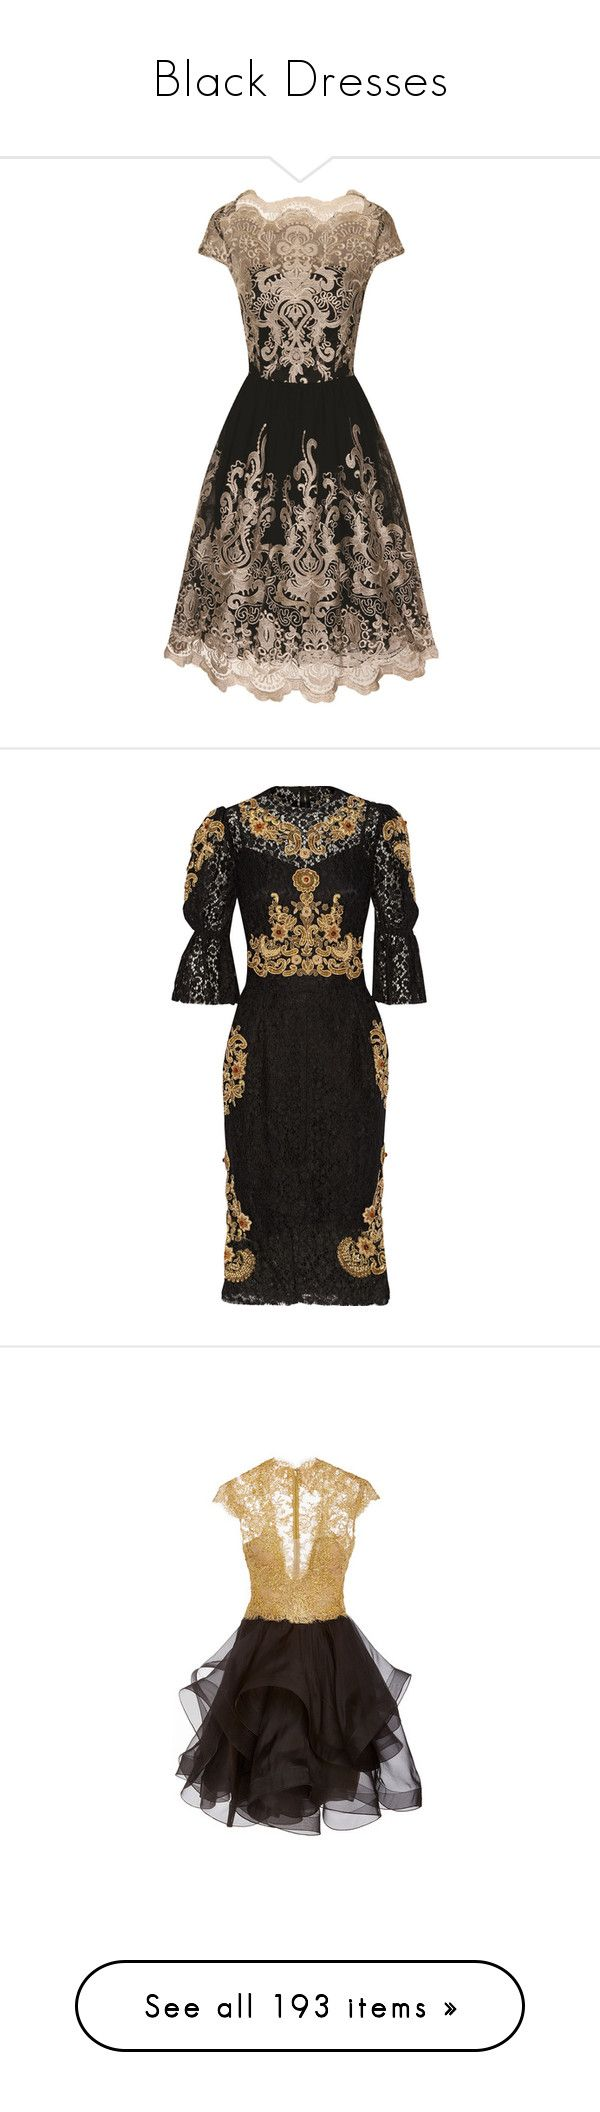 """""""Black Dresses"""" by sakuragirl ❤ liked on Polyvore featuring dresses, black, women, night out dresses, embroidered cocktail dress, chi chi dresses, metallic gold dress, cocktail party dress, dolce & gabbana and metallic lace dress"""